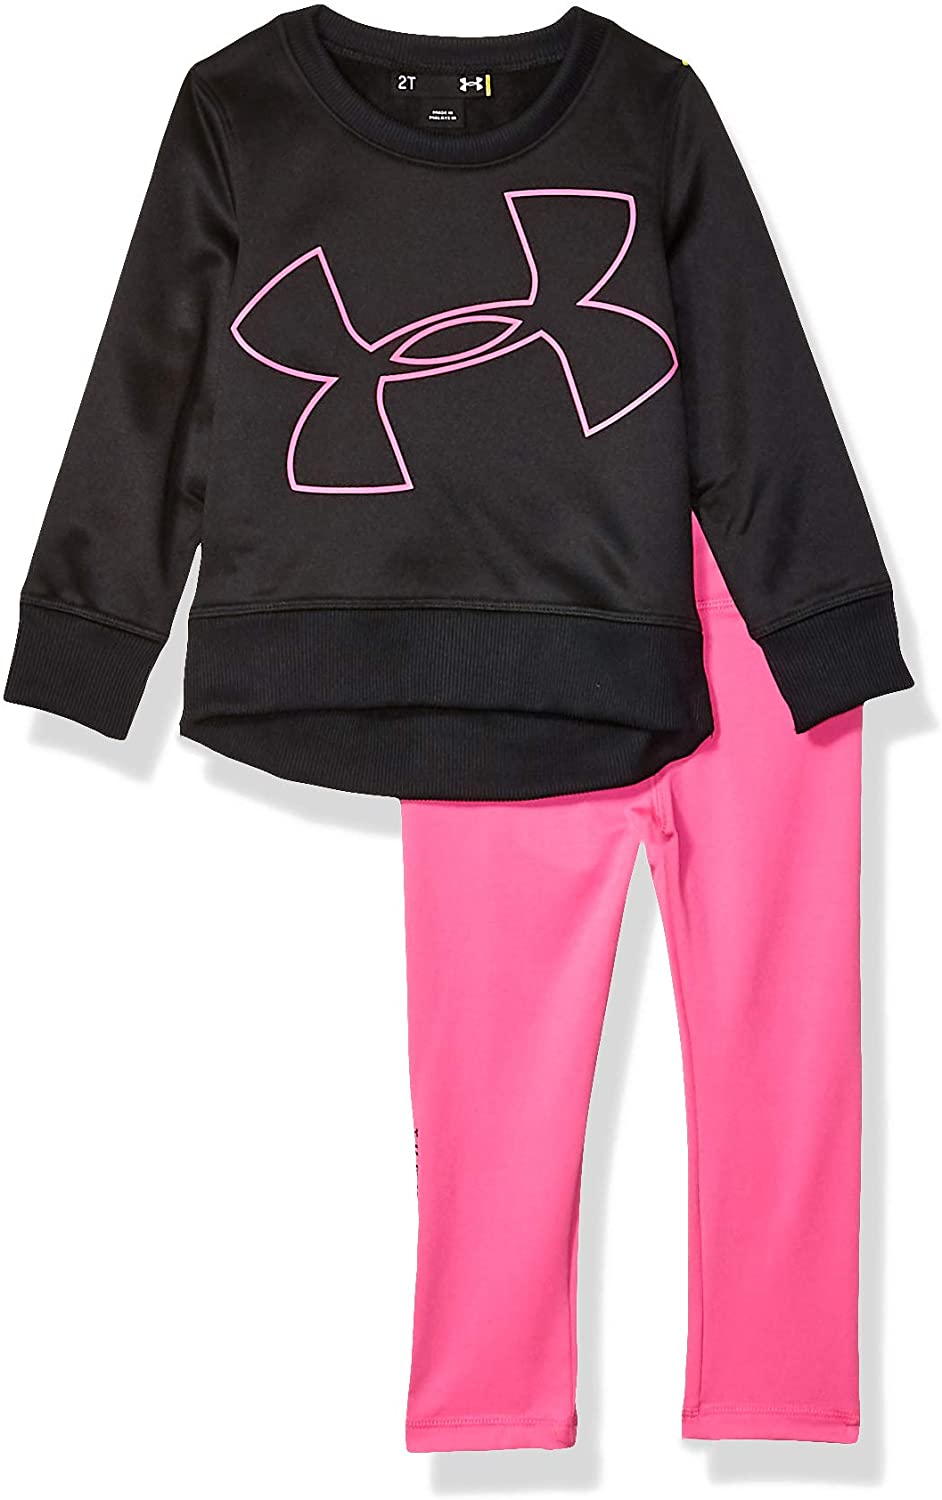 Under Armour Girls' Long Sleeve Fleece & Legging Set